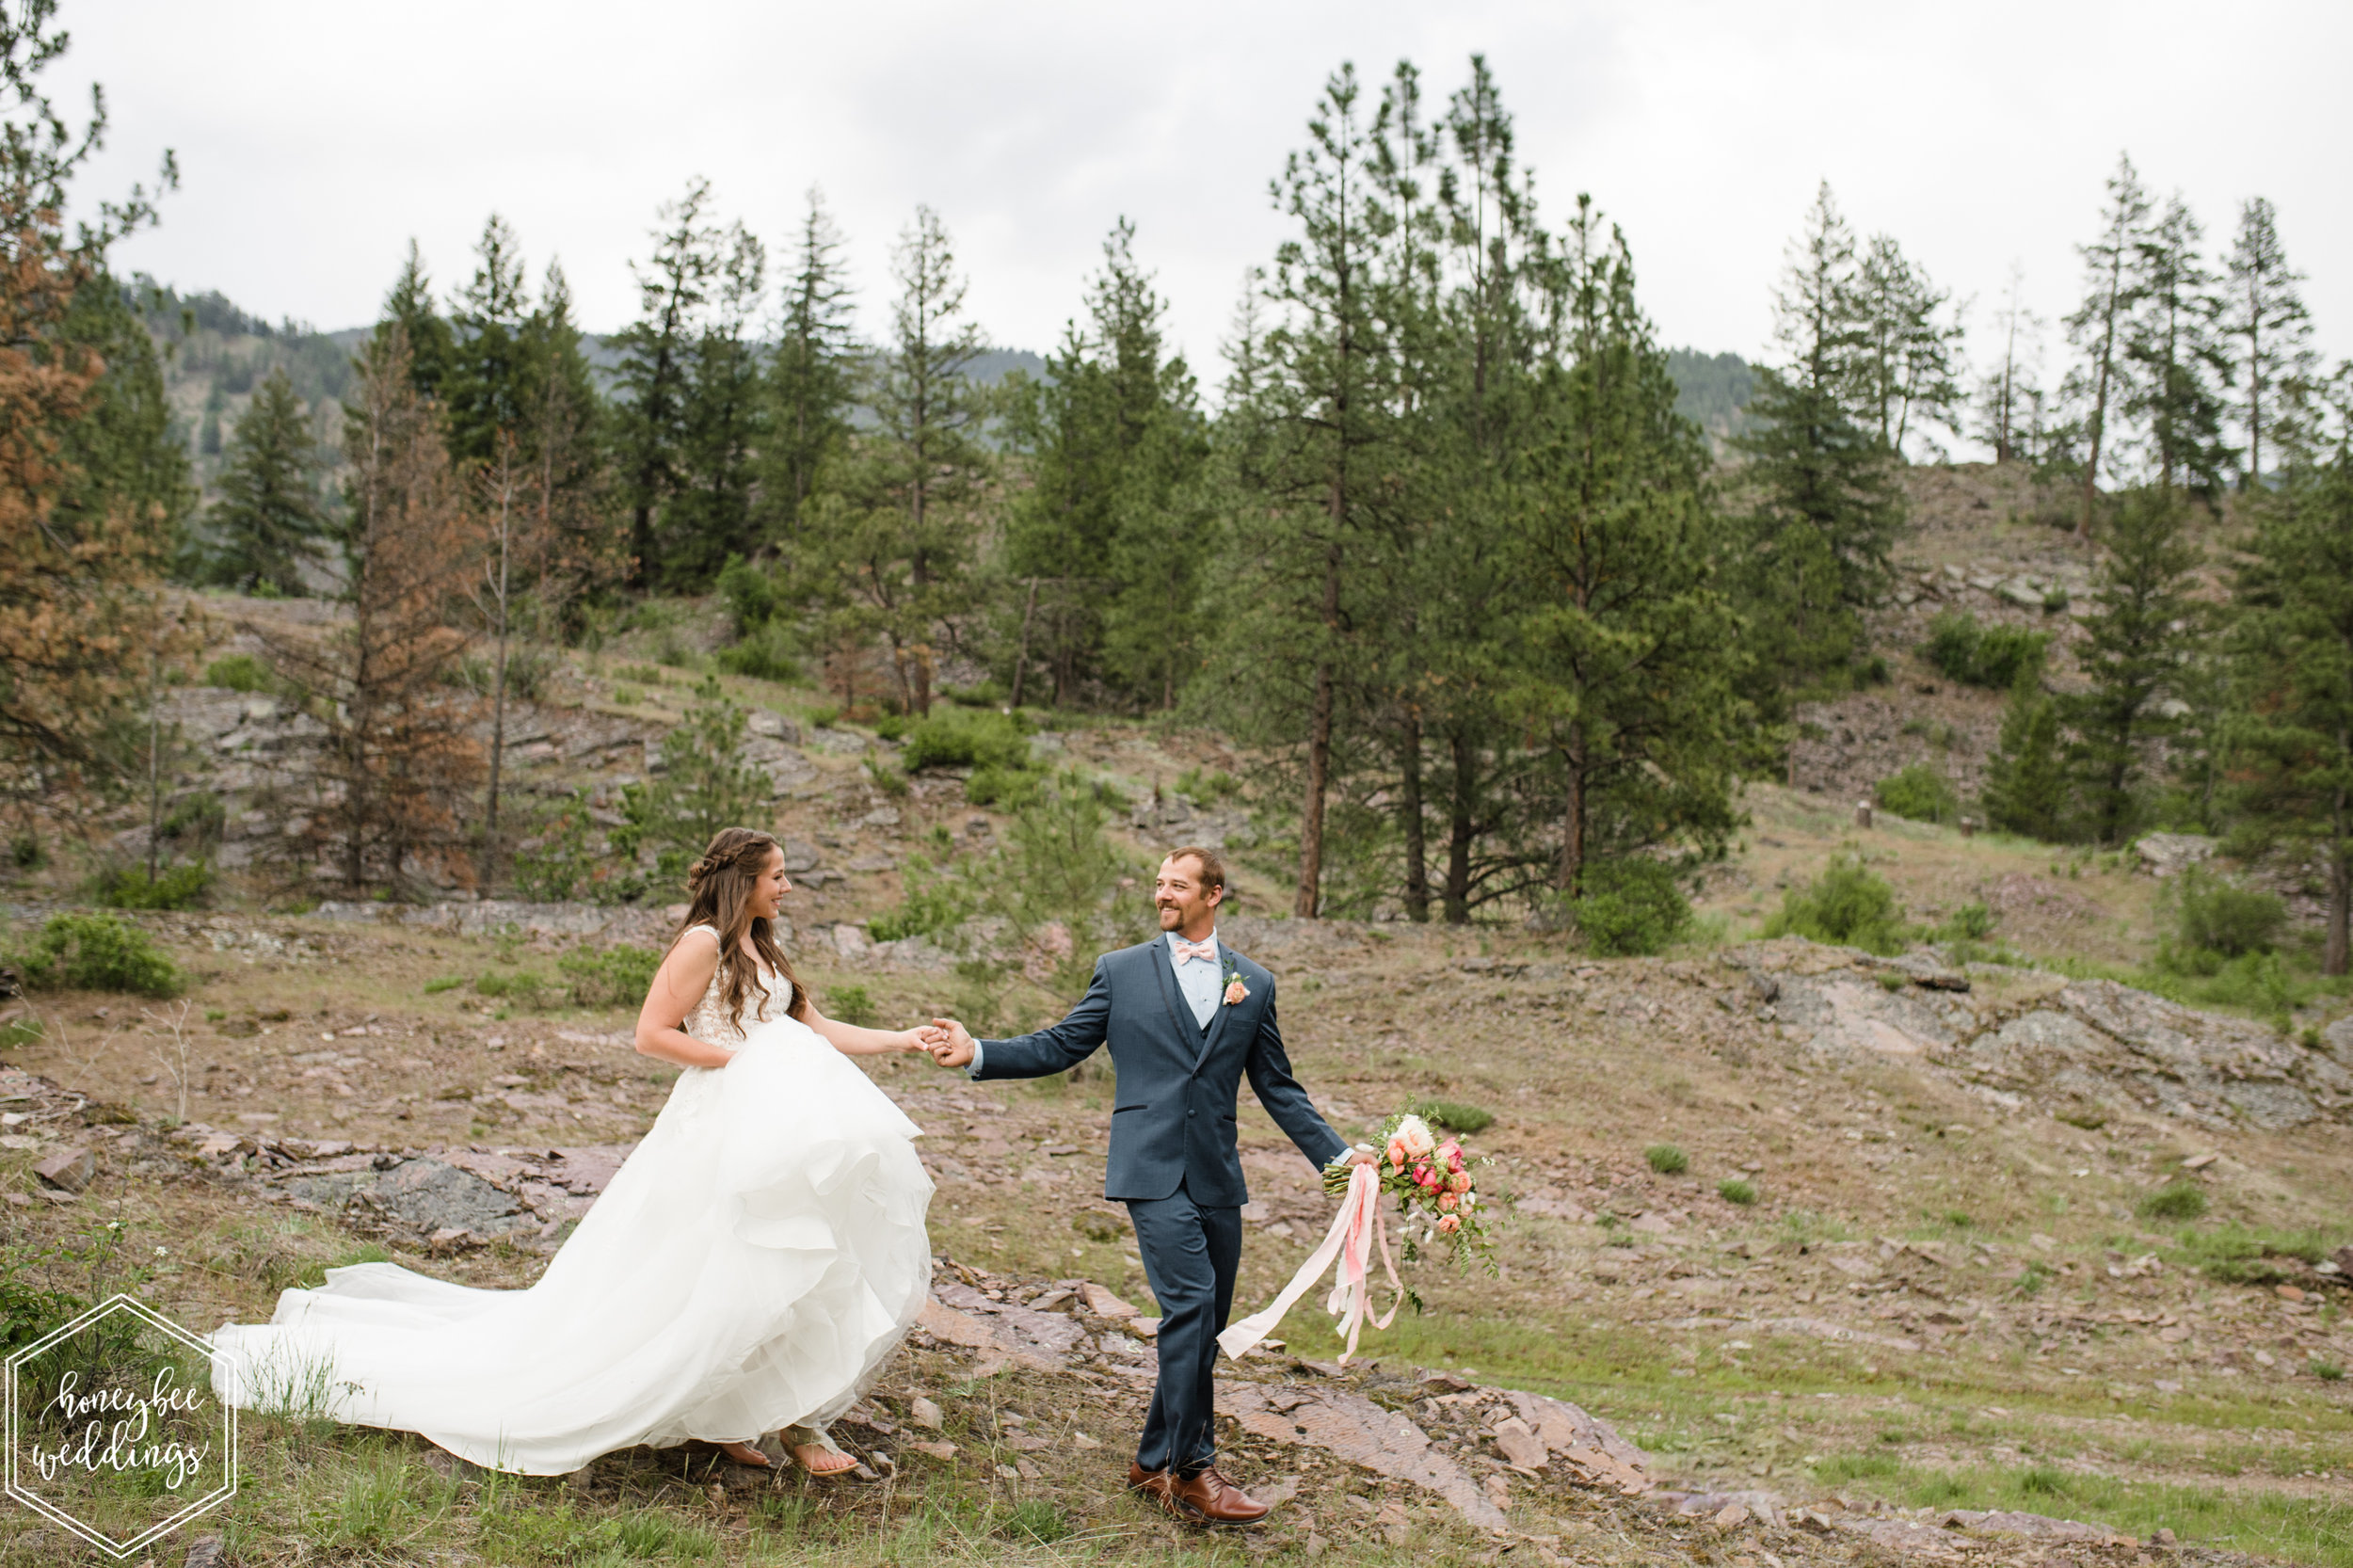 158Coral Mountain Wedding at White Raven_Honeybee Weddings_May 23, 2019-473.jpg